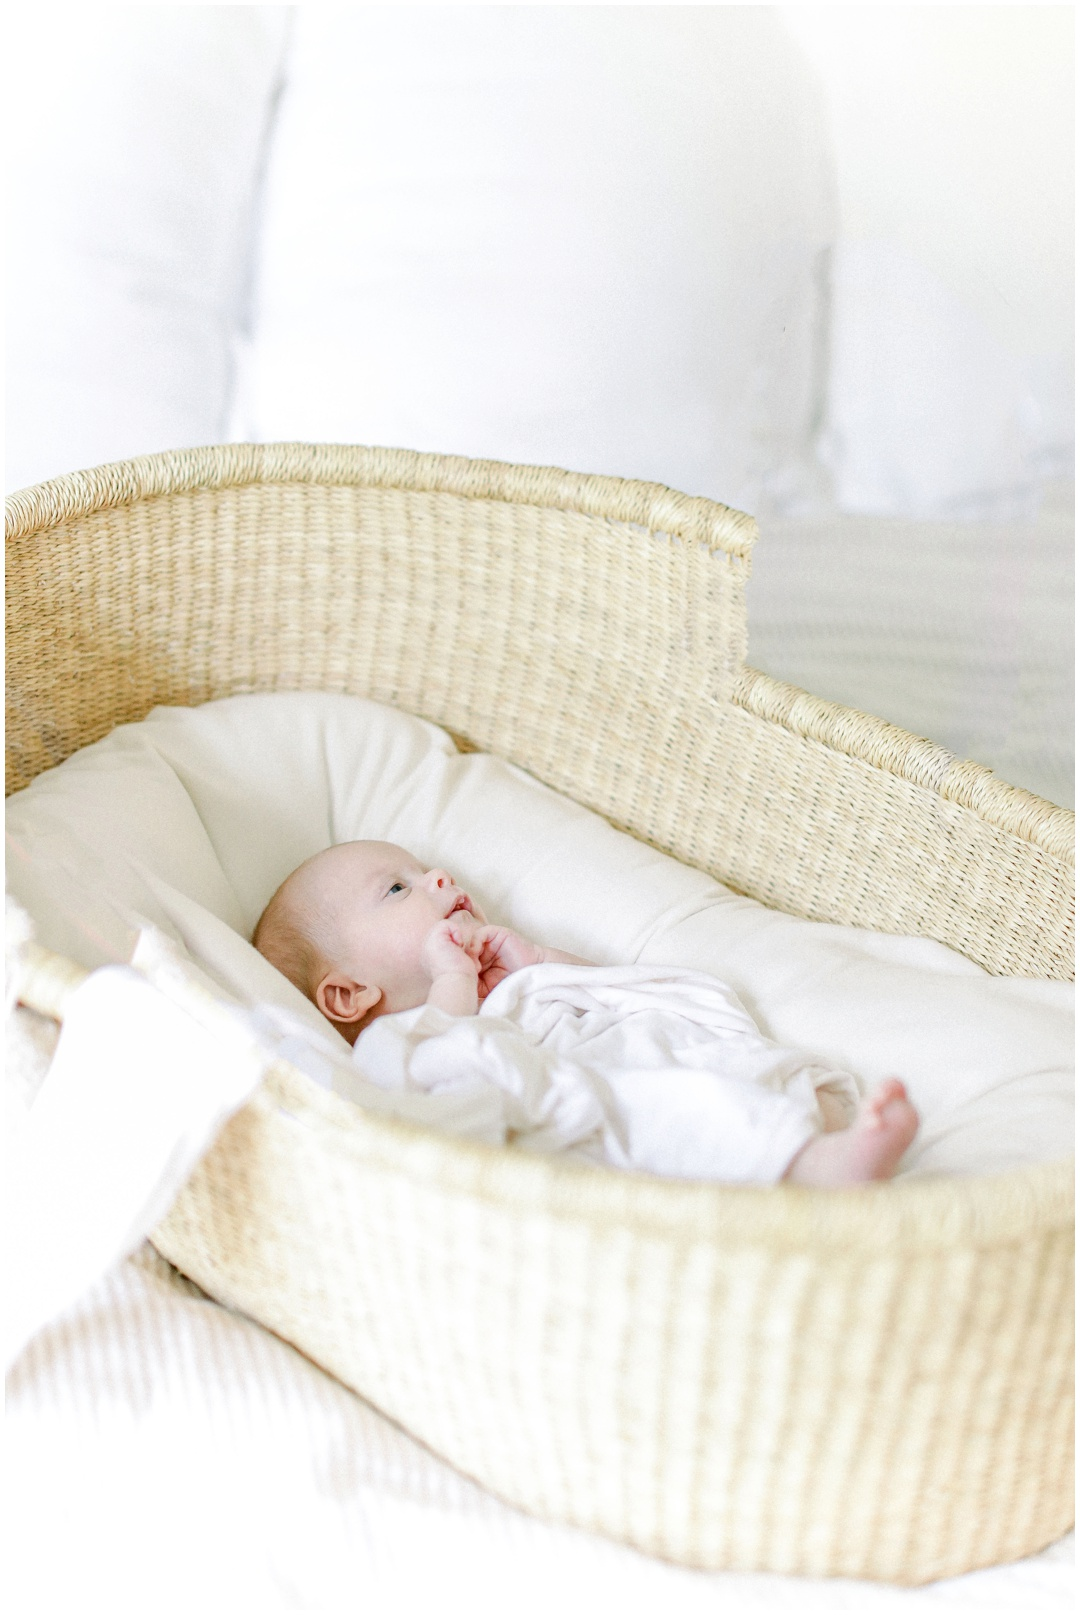 Newport_Beach_Newborn_Light_Airy_Natural_Photographer_Newport_Beach_In-Home_Photographer_Orange_County_Family_Photographer_Cori_Kleckner_Photography_Huntington_Beach_Photographer_Family_OC_Newborn_Meghan_Sullivan_Newborn_Family_Greer_Sullivan_3229.jpg